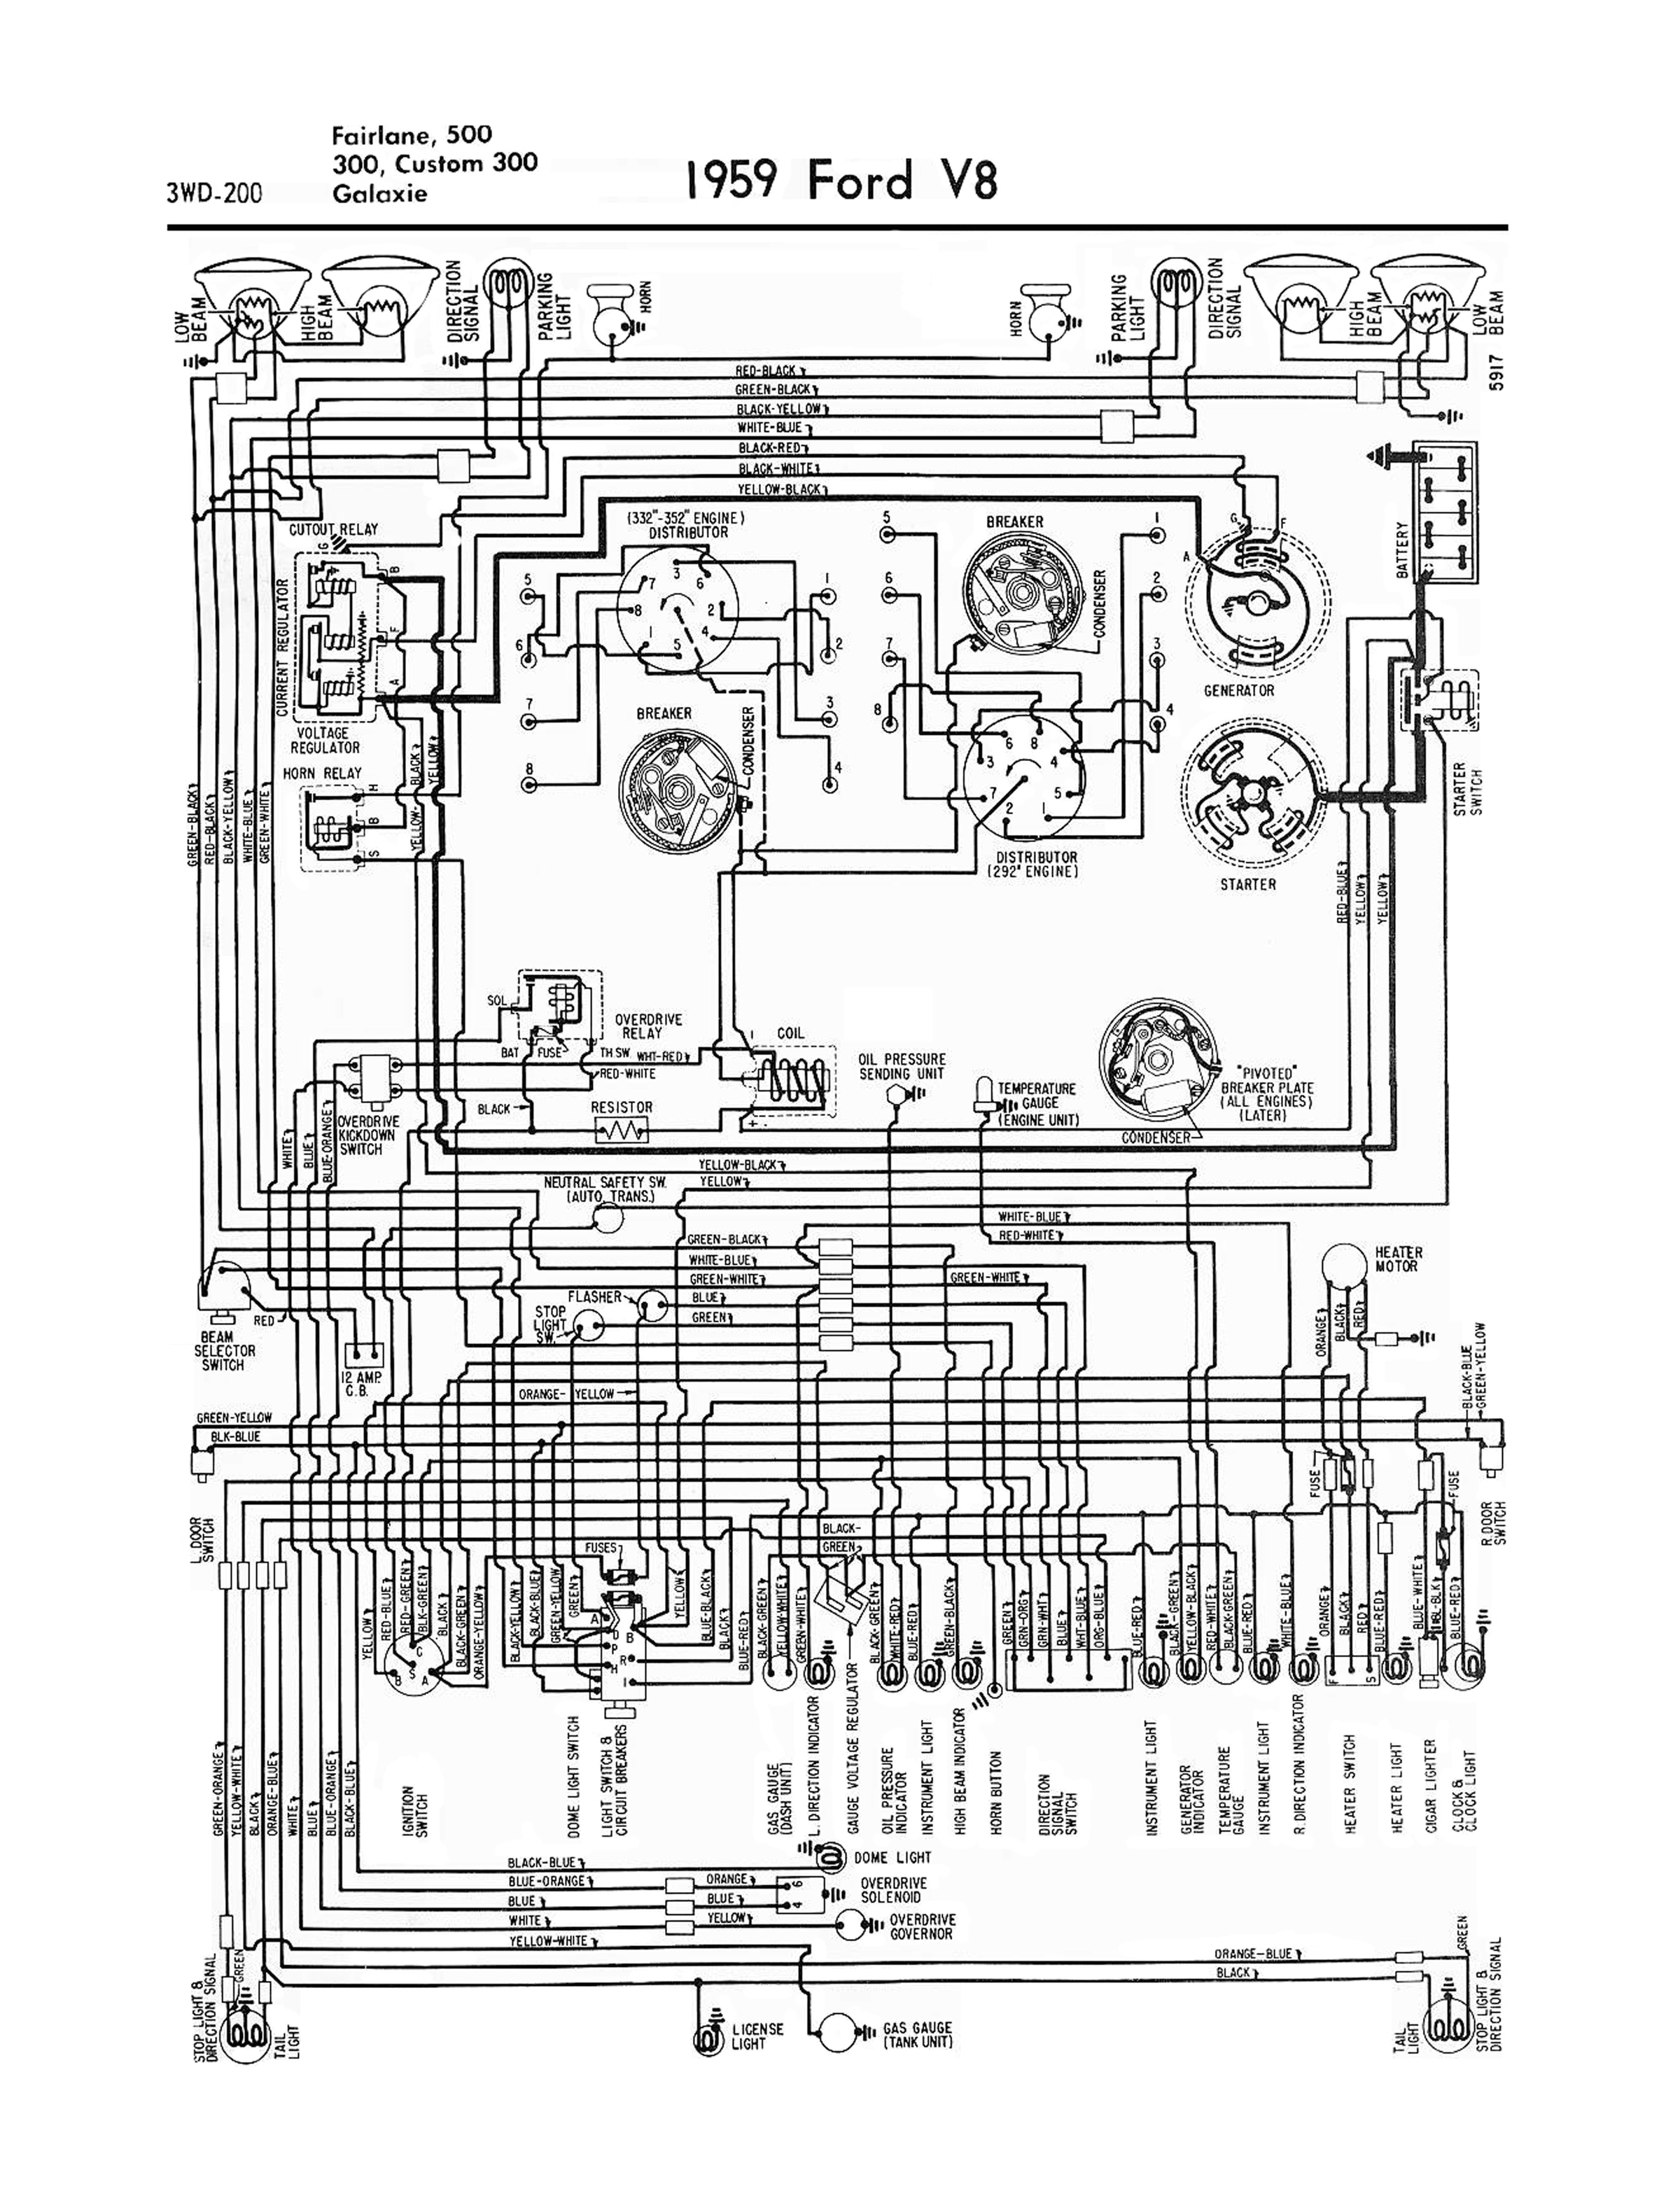 1958 plymouth wiring diagram 1958 ford wiring diagram 1958-68 ford electrical schematics